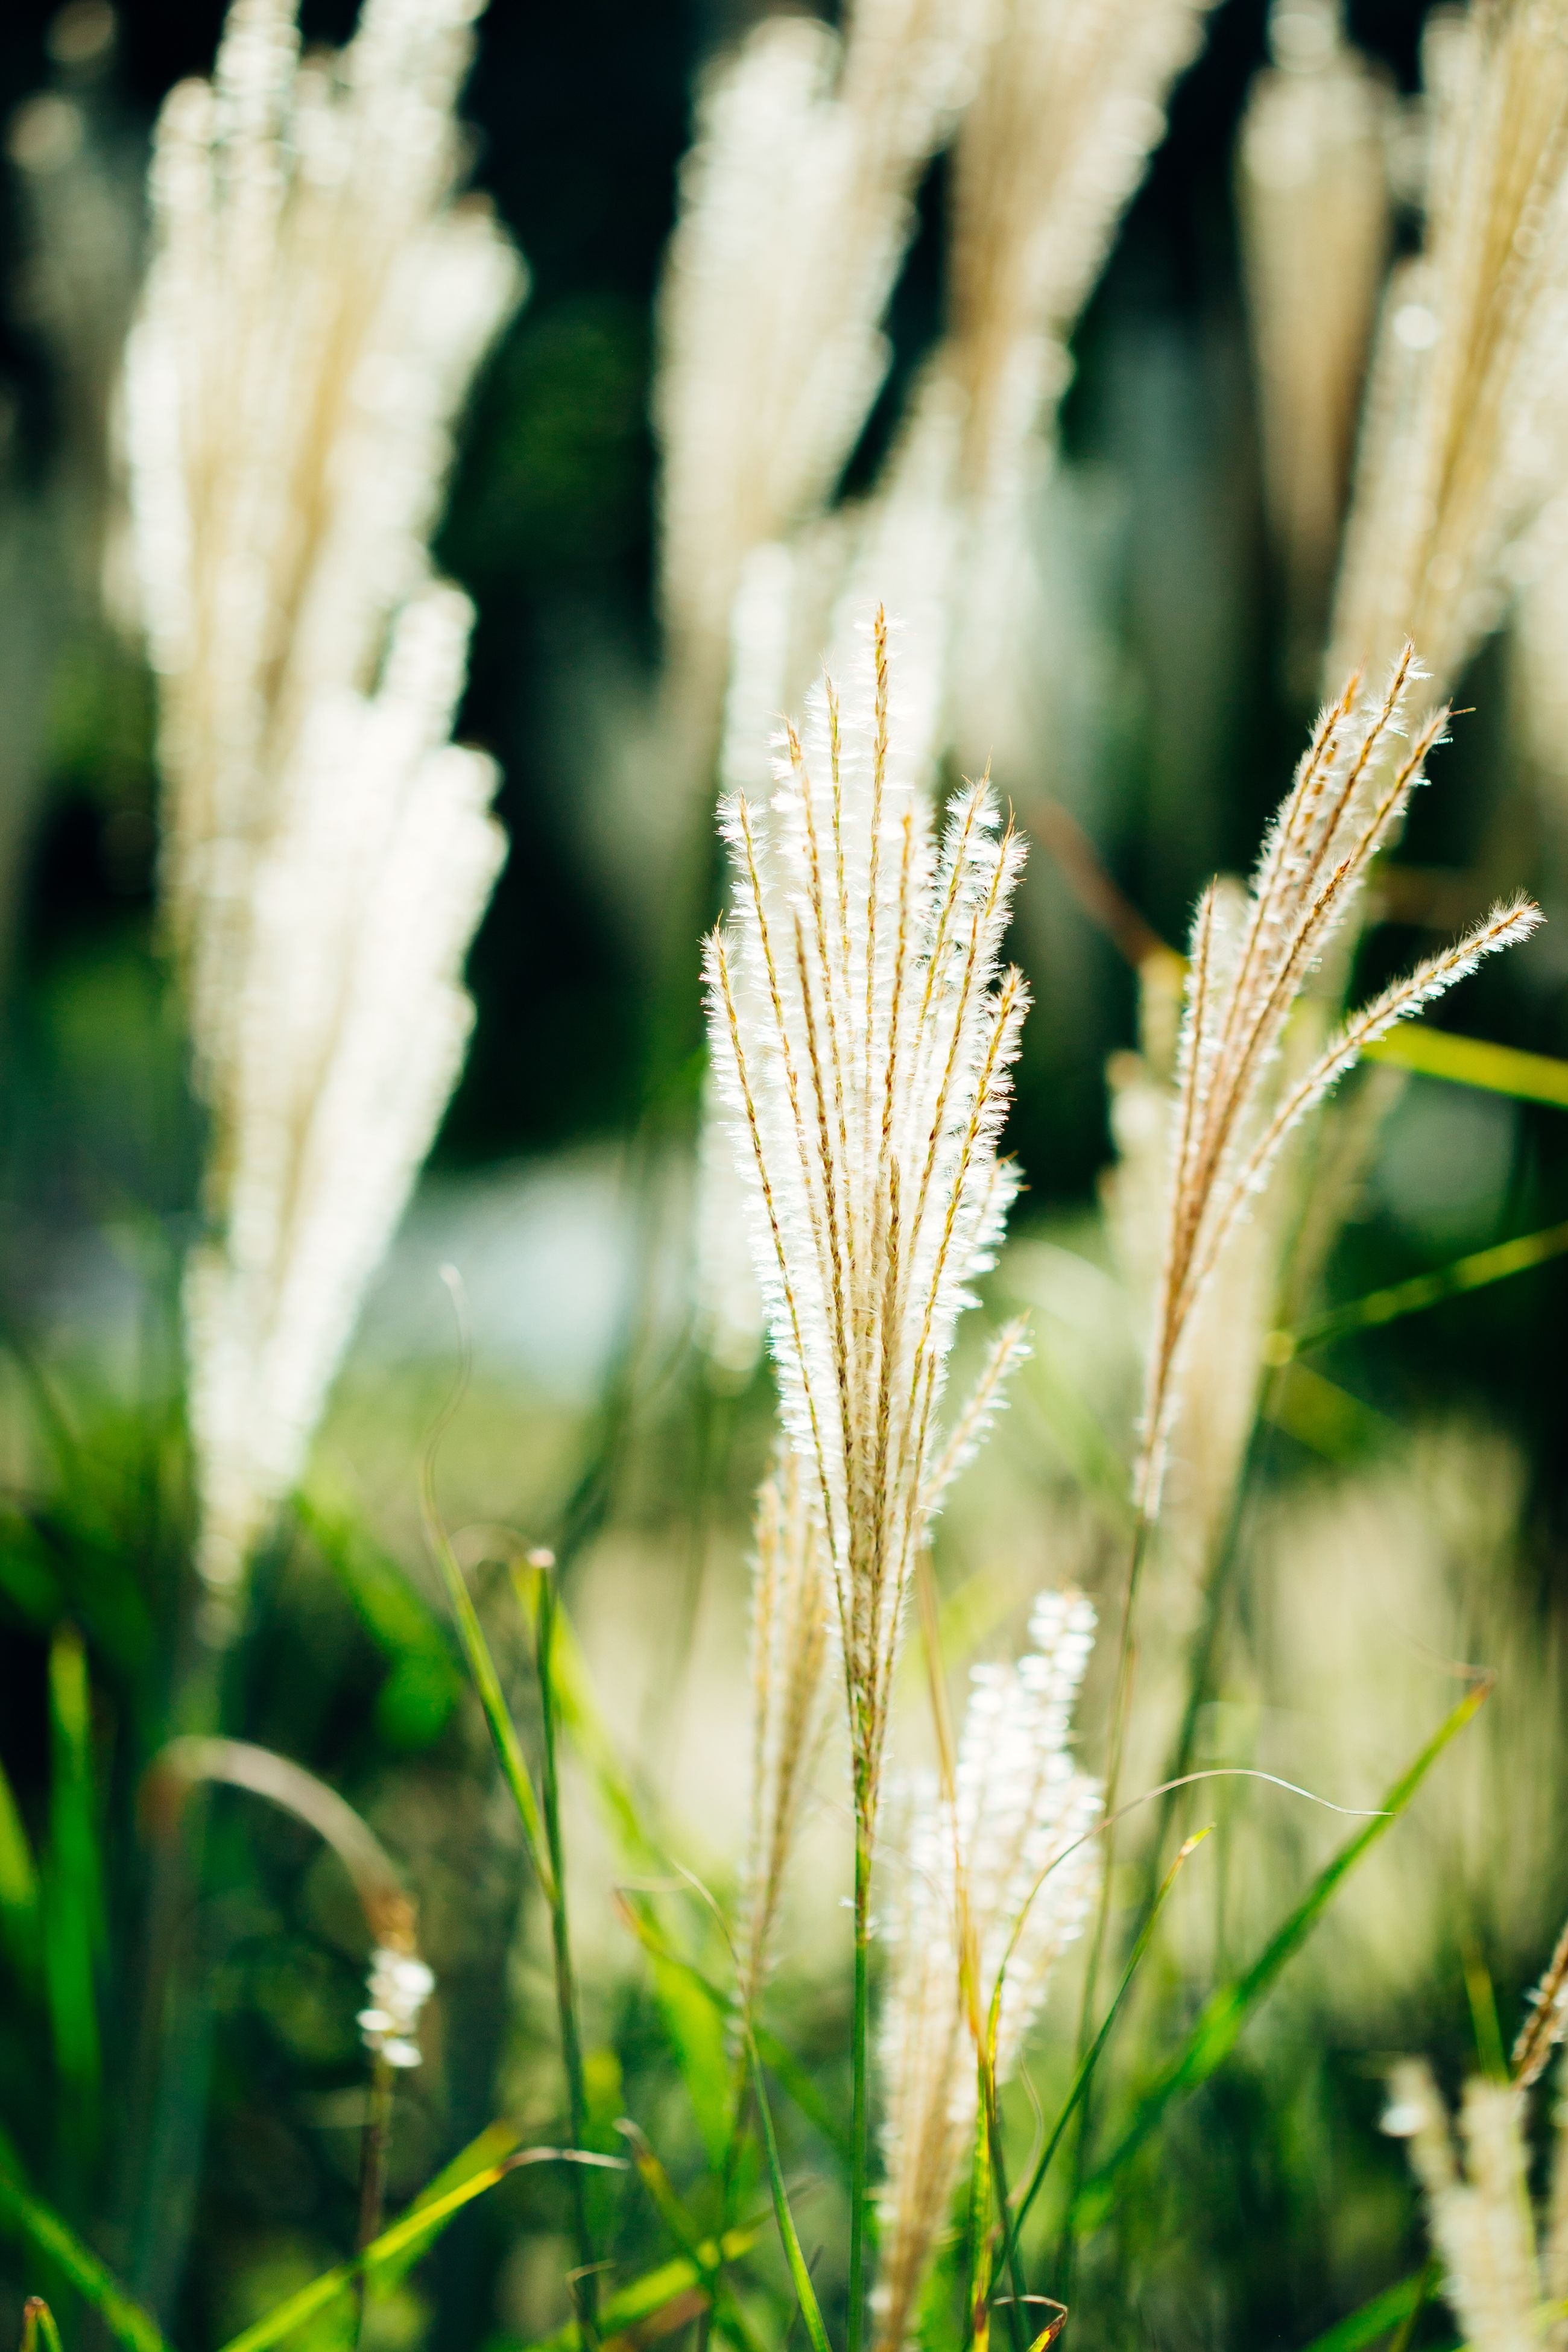 focus on foreground, growth, close-up, plant, selective focus, grass, nature, field, stem, beauty in nature, freshness, tranquility, fragility, growing, day, outdoors, uncultivated, blade of grass, no people, green color